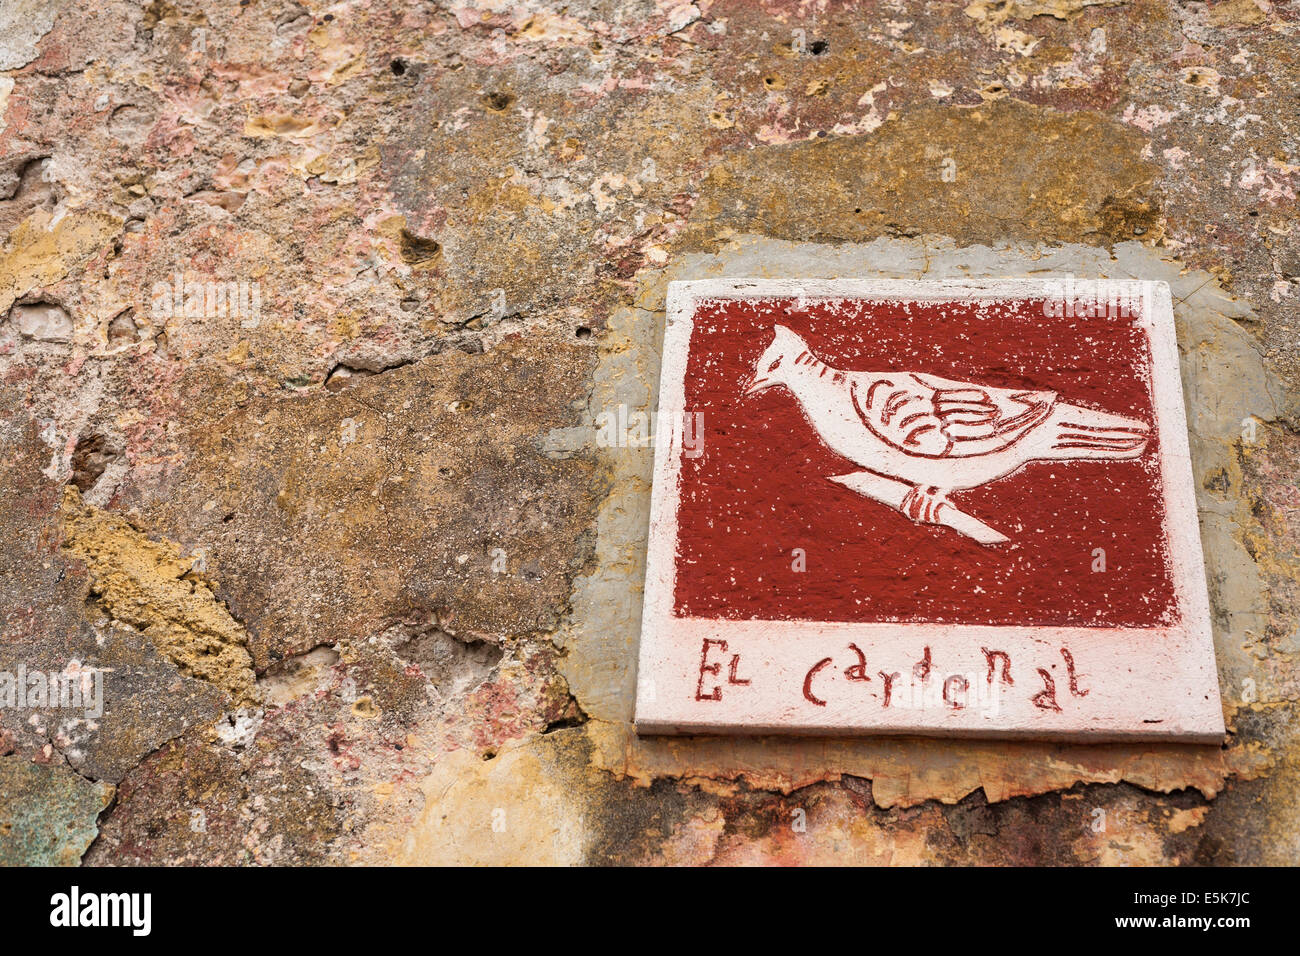 El Cardenal: Pictographic Street Sign in Merida. A picture of a cardinal bird identifies a street in Merida - Stock Image